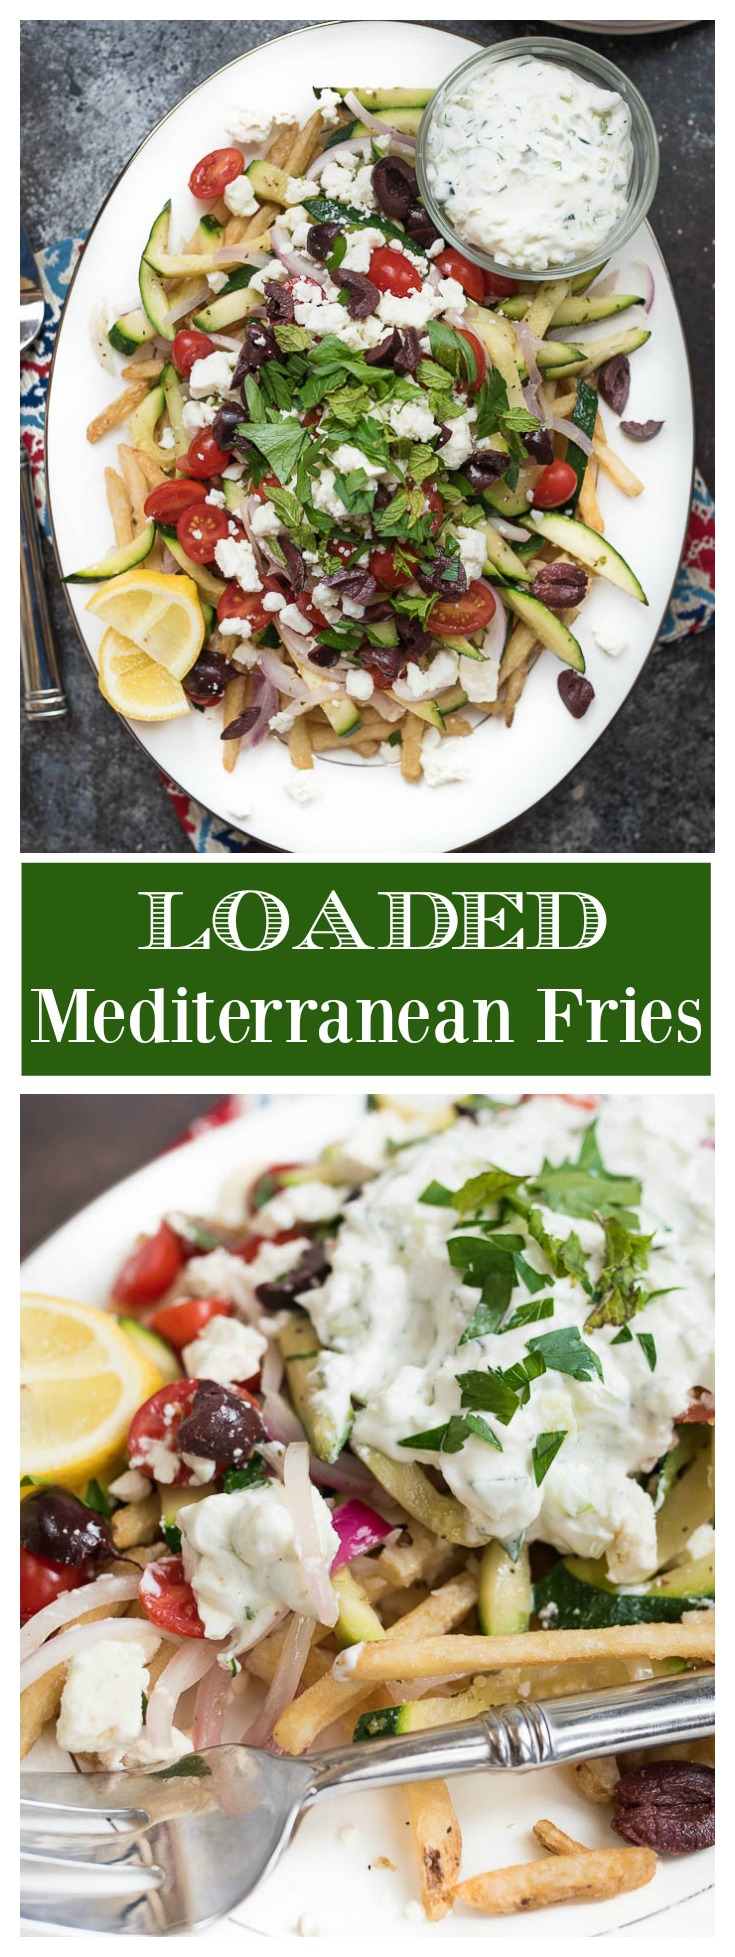 Loaded Mediterranean Fries- the only side you'll need. Truffle fries loaded with Mediterranean veggies, herbs and tzatziki sauce! #glutenfree   www.nutritiouseats.com